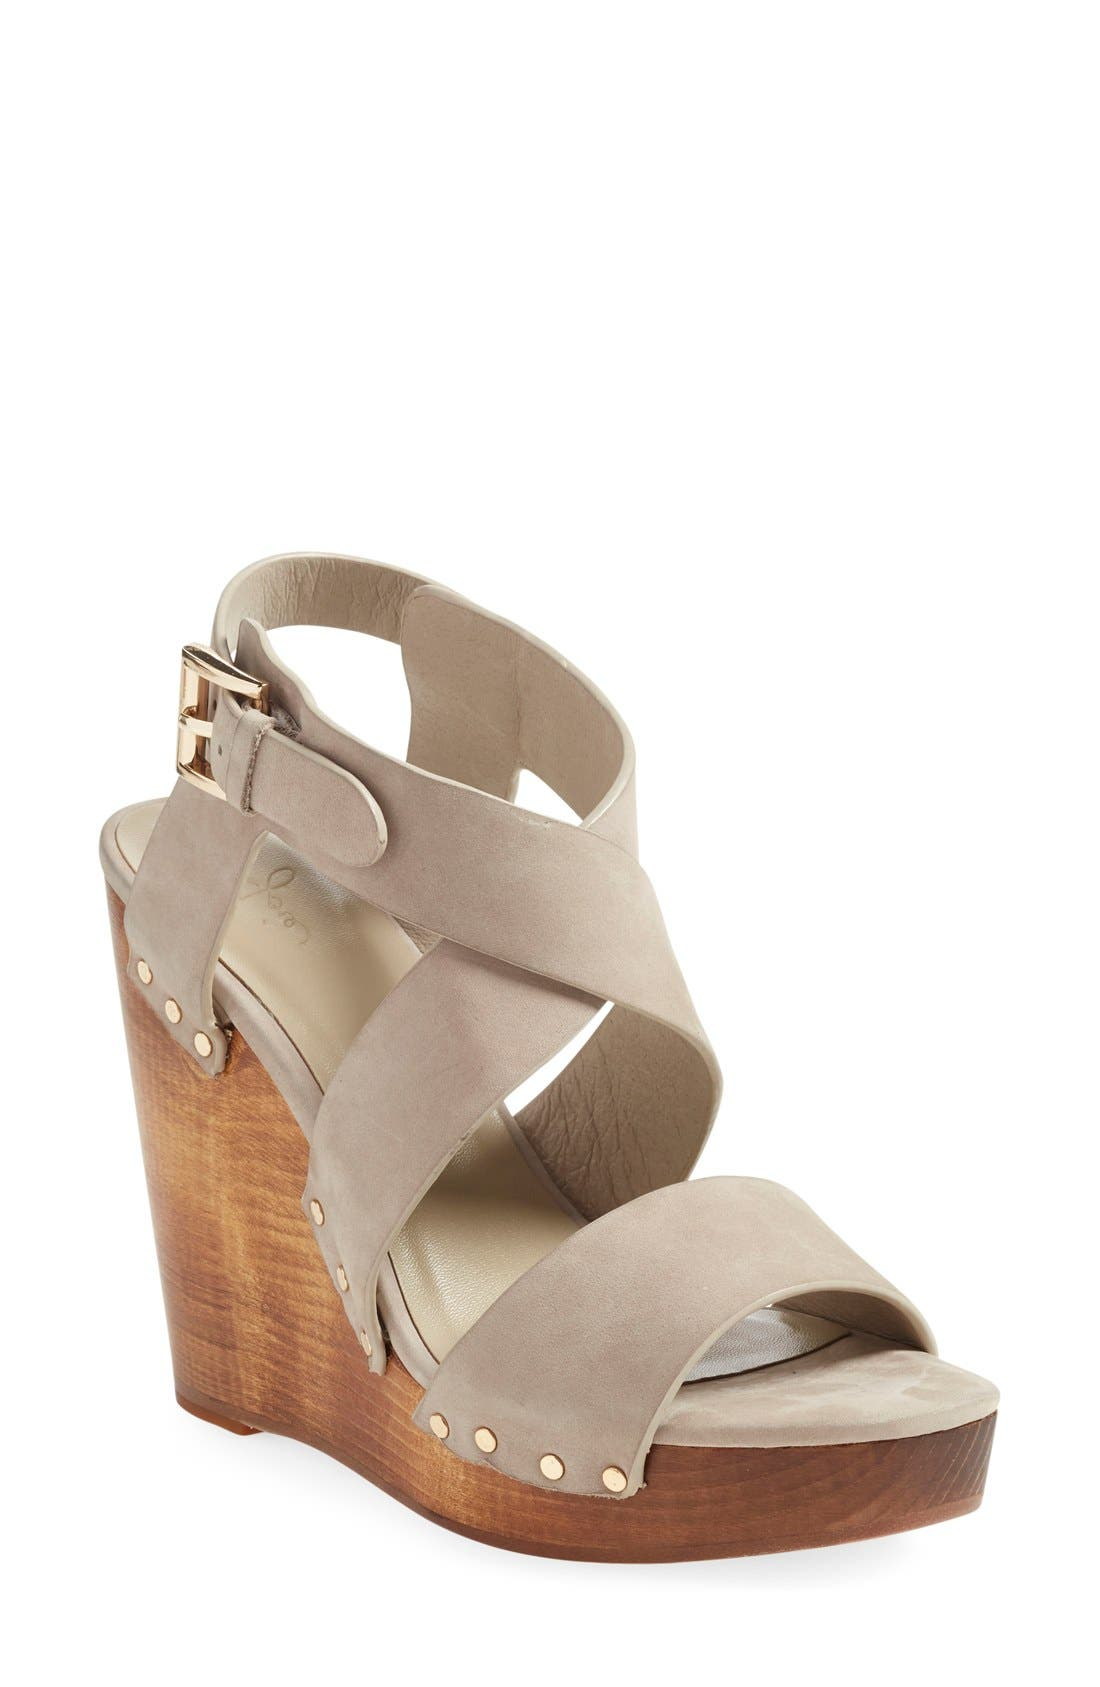 Alternate Image 1 Selected - Joie 'Cecilia' Wedge Sandal (Women)